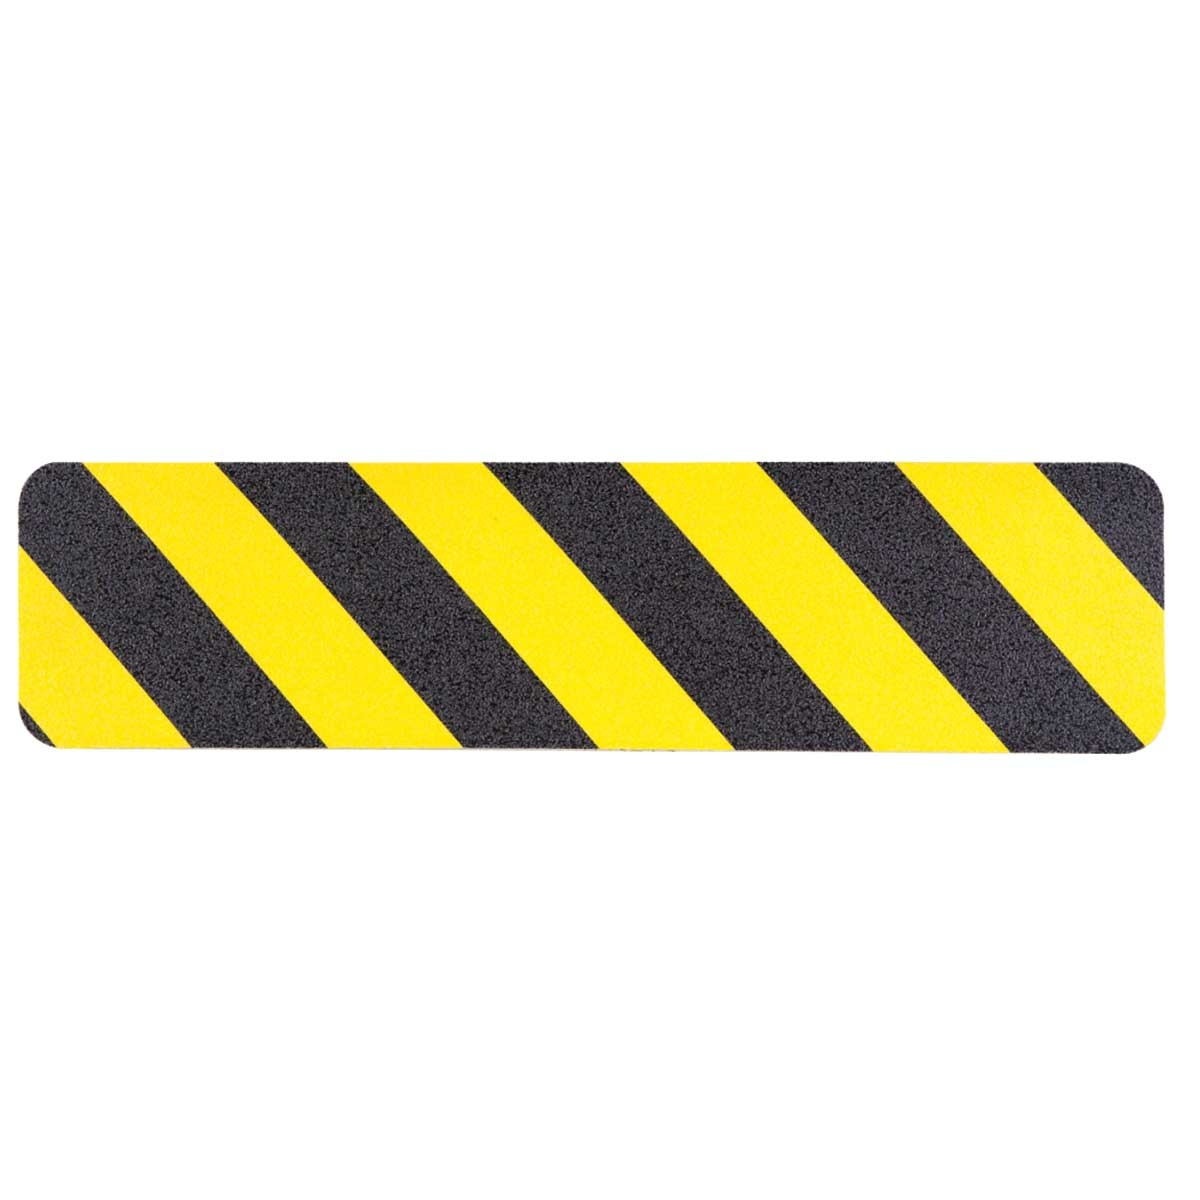 Construction tape clipart 1200x1200 background clipart black and white library Caution Tape Border Clipart | Free download best Caution Tape Border ... clipart black and white library